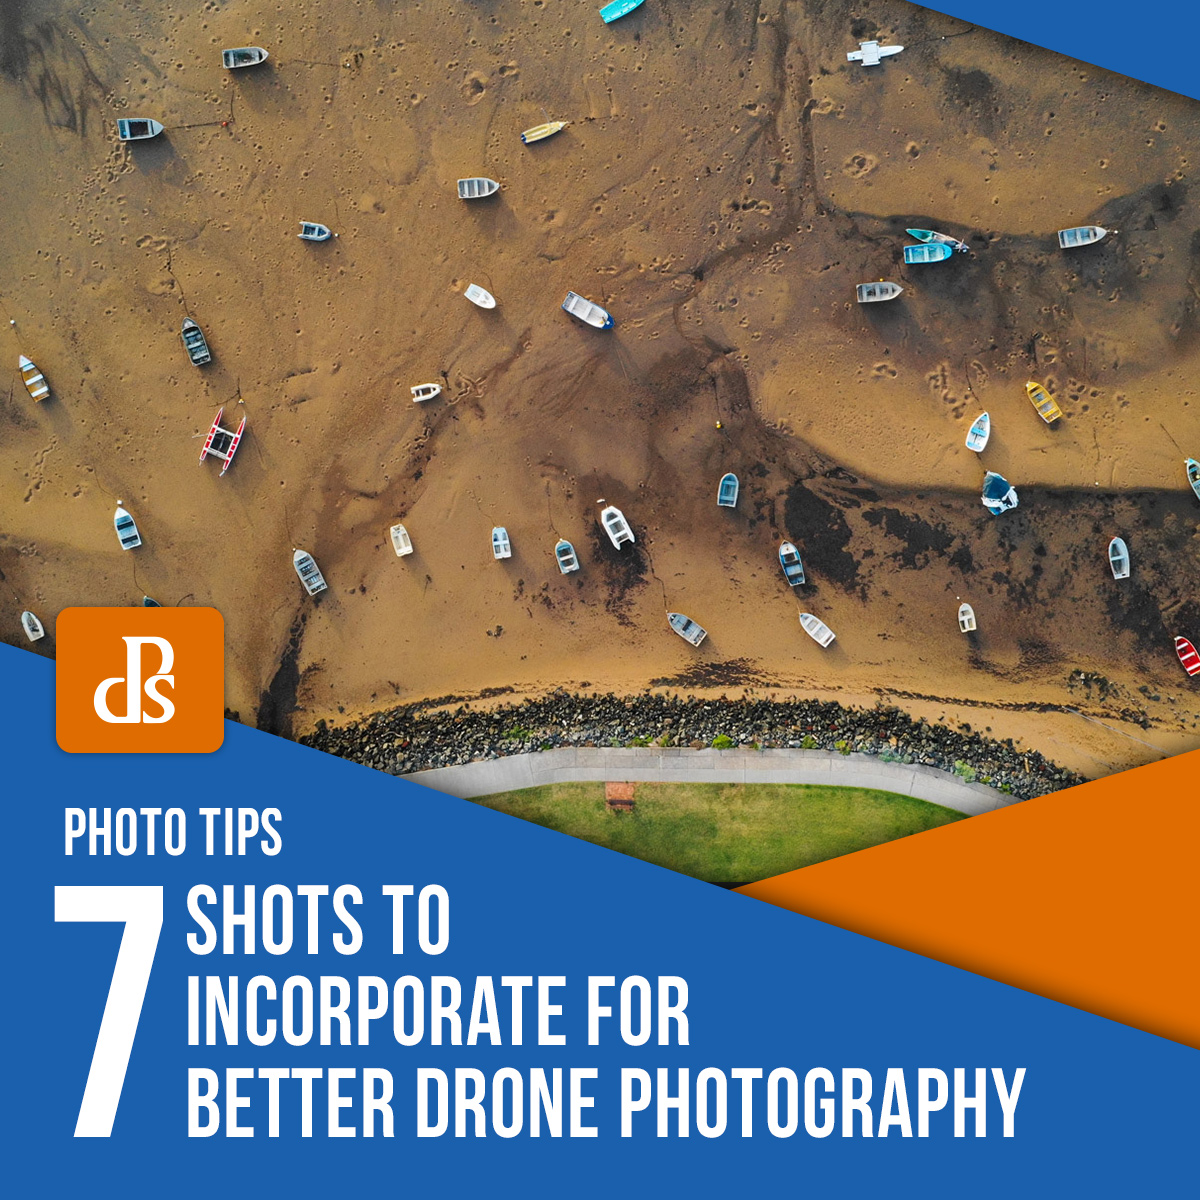 7 Shots to Incorporate for Better Drone Photography